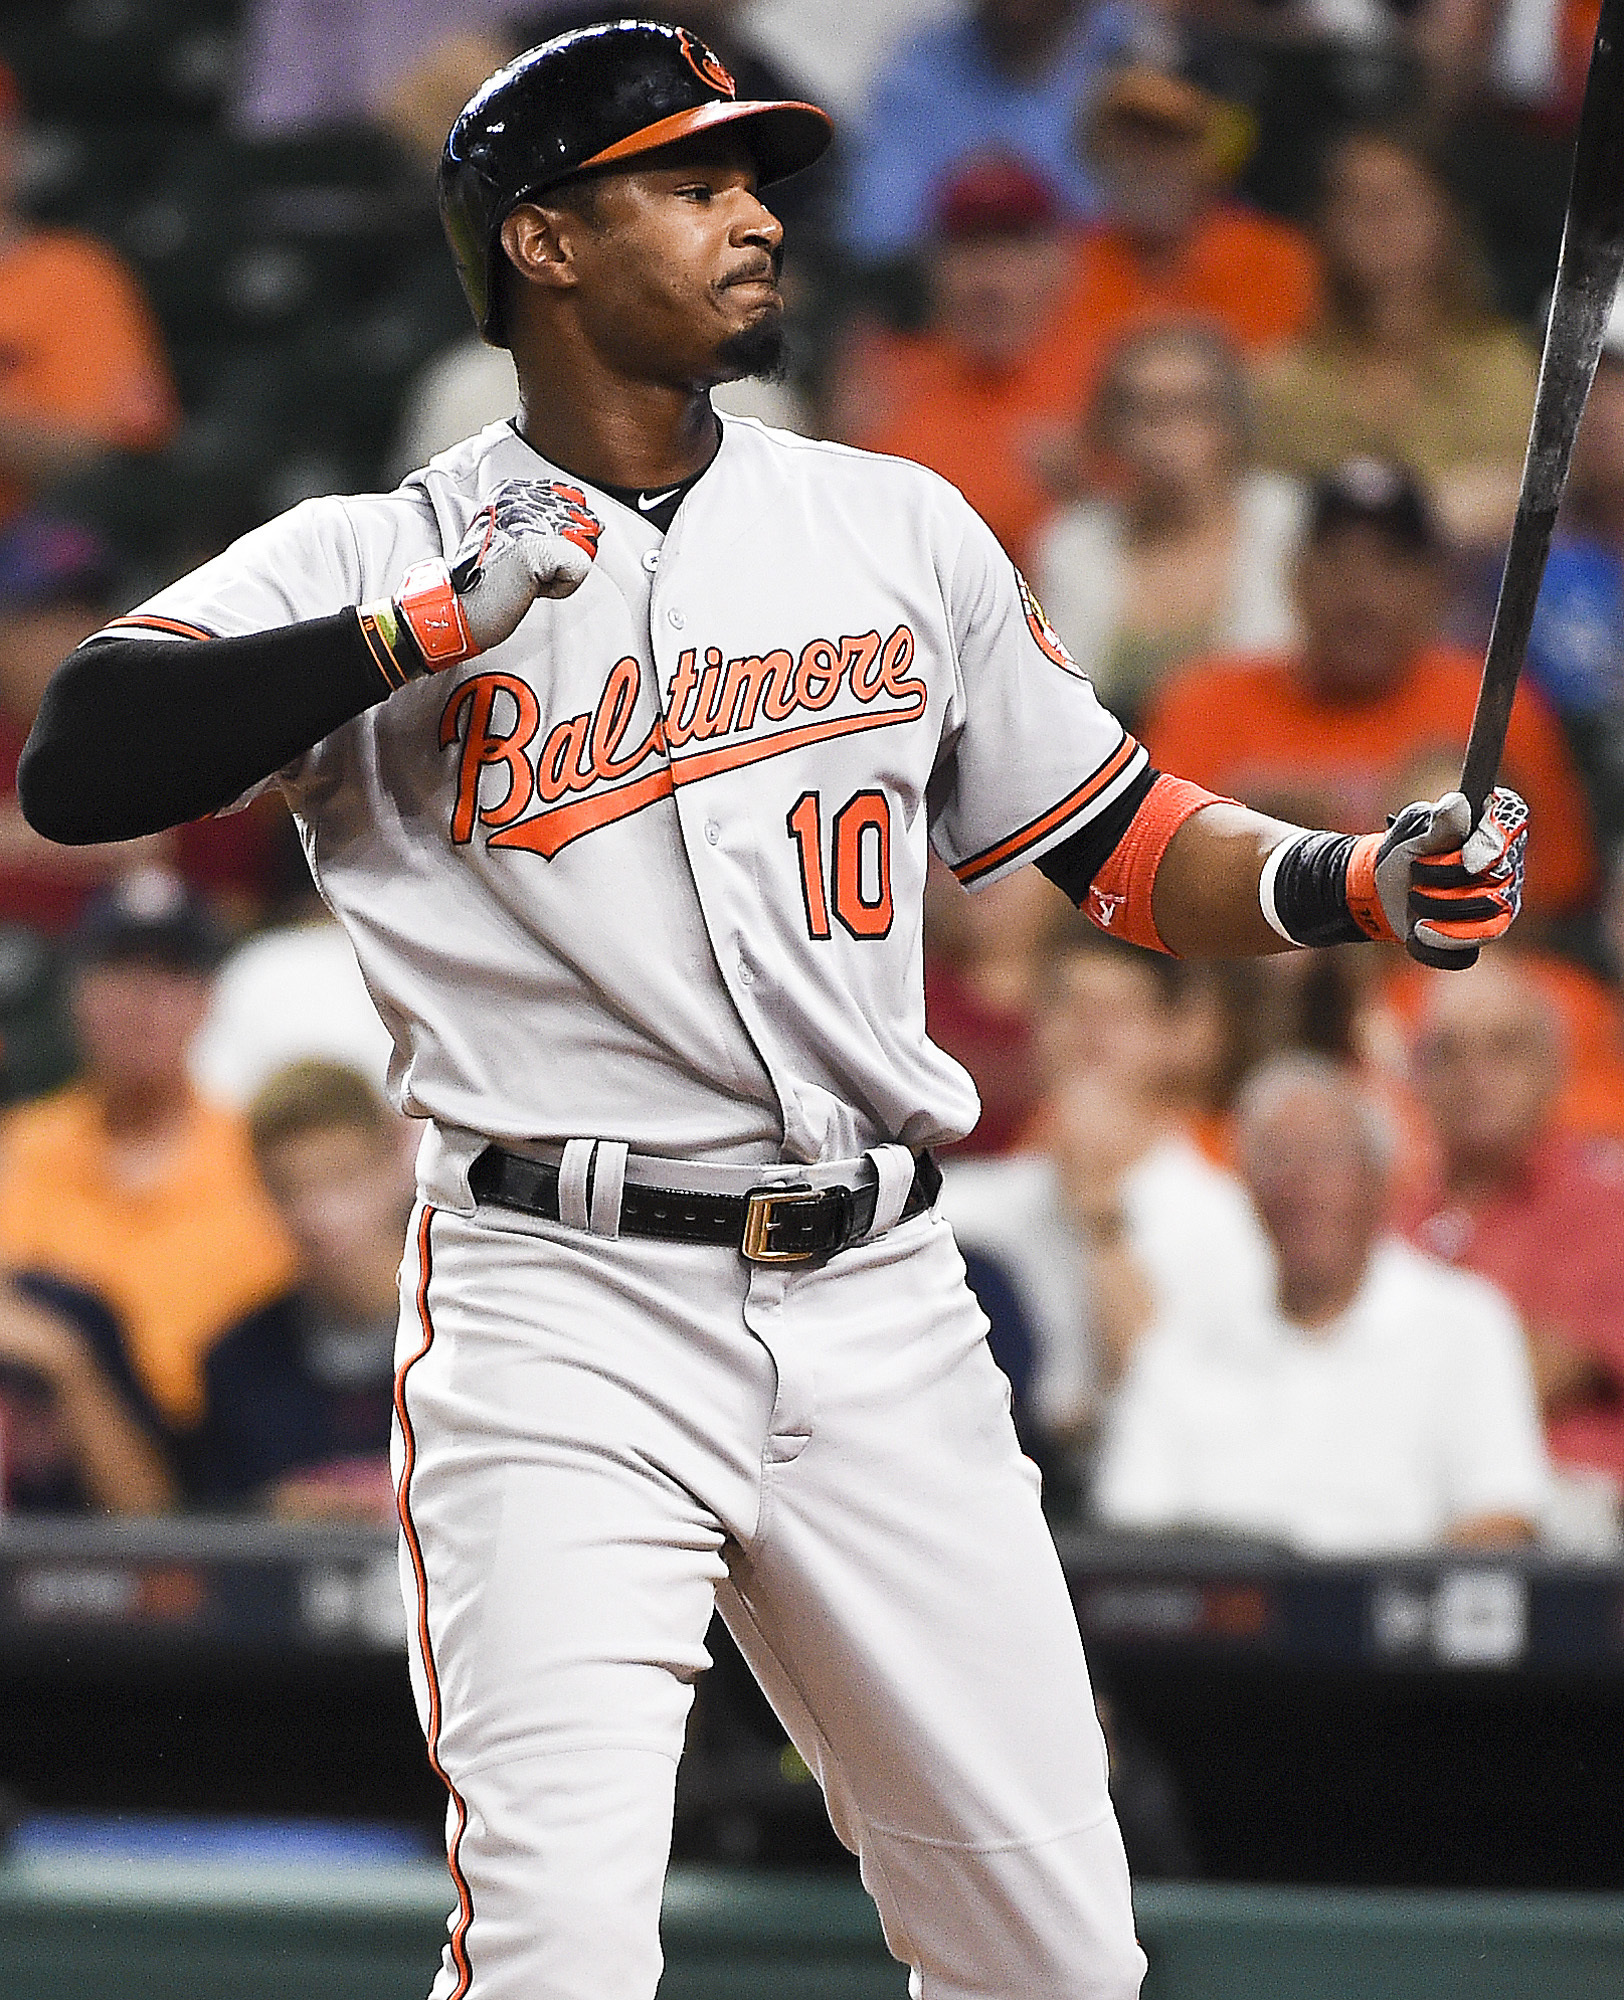 Baltimore Orioles' Adam Jones reacts after striking out during the first inning of a baseball game against the Houston Astros, Thursday, May 26, 2016, in Houston. (AP Photo/Eric Christian Smith)